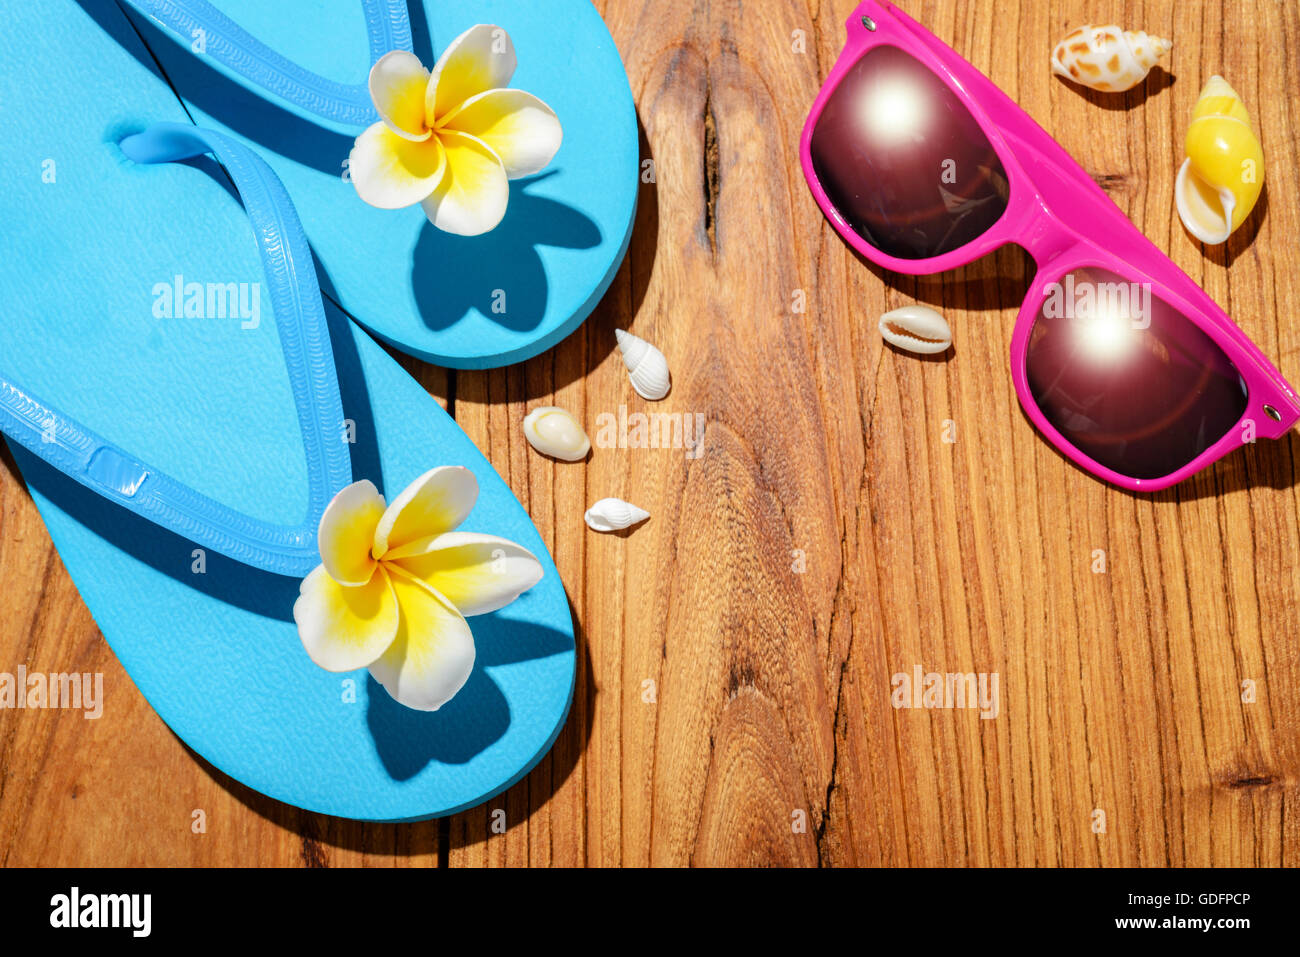 flip-flop and sunglasses on wooden board - Stock Image